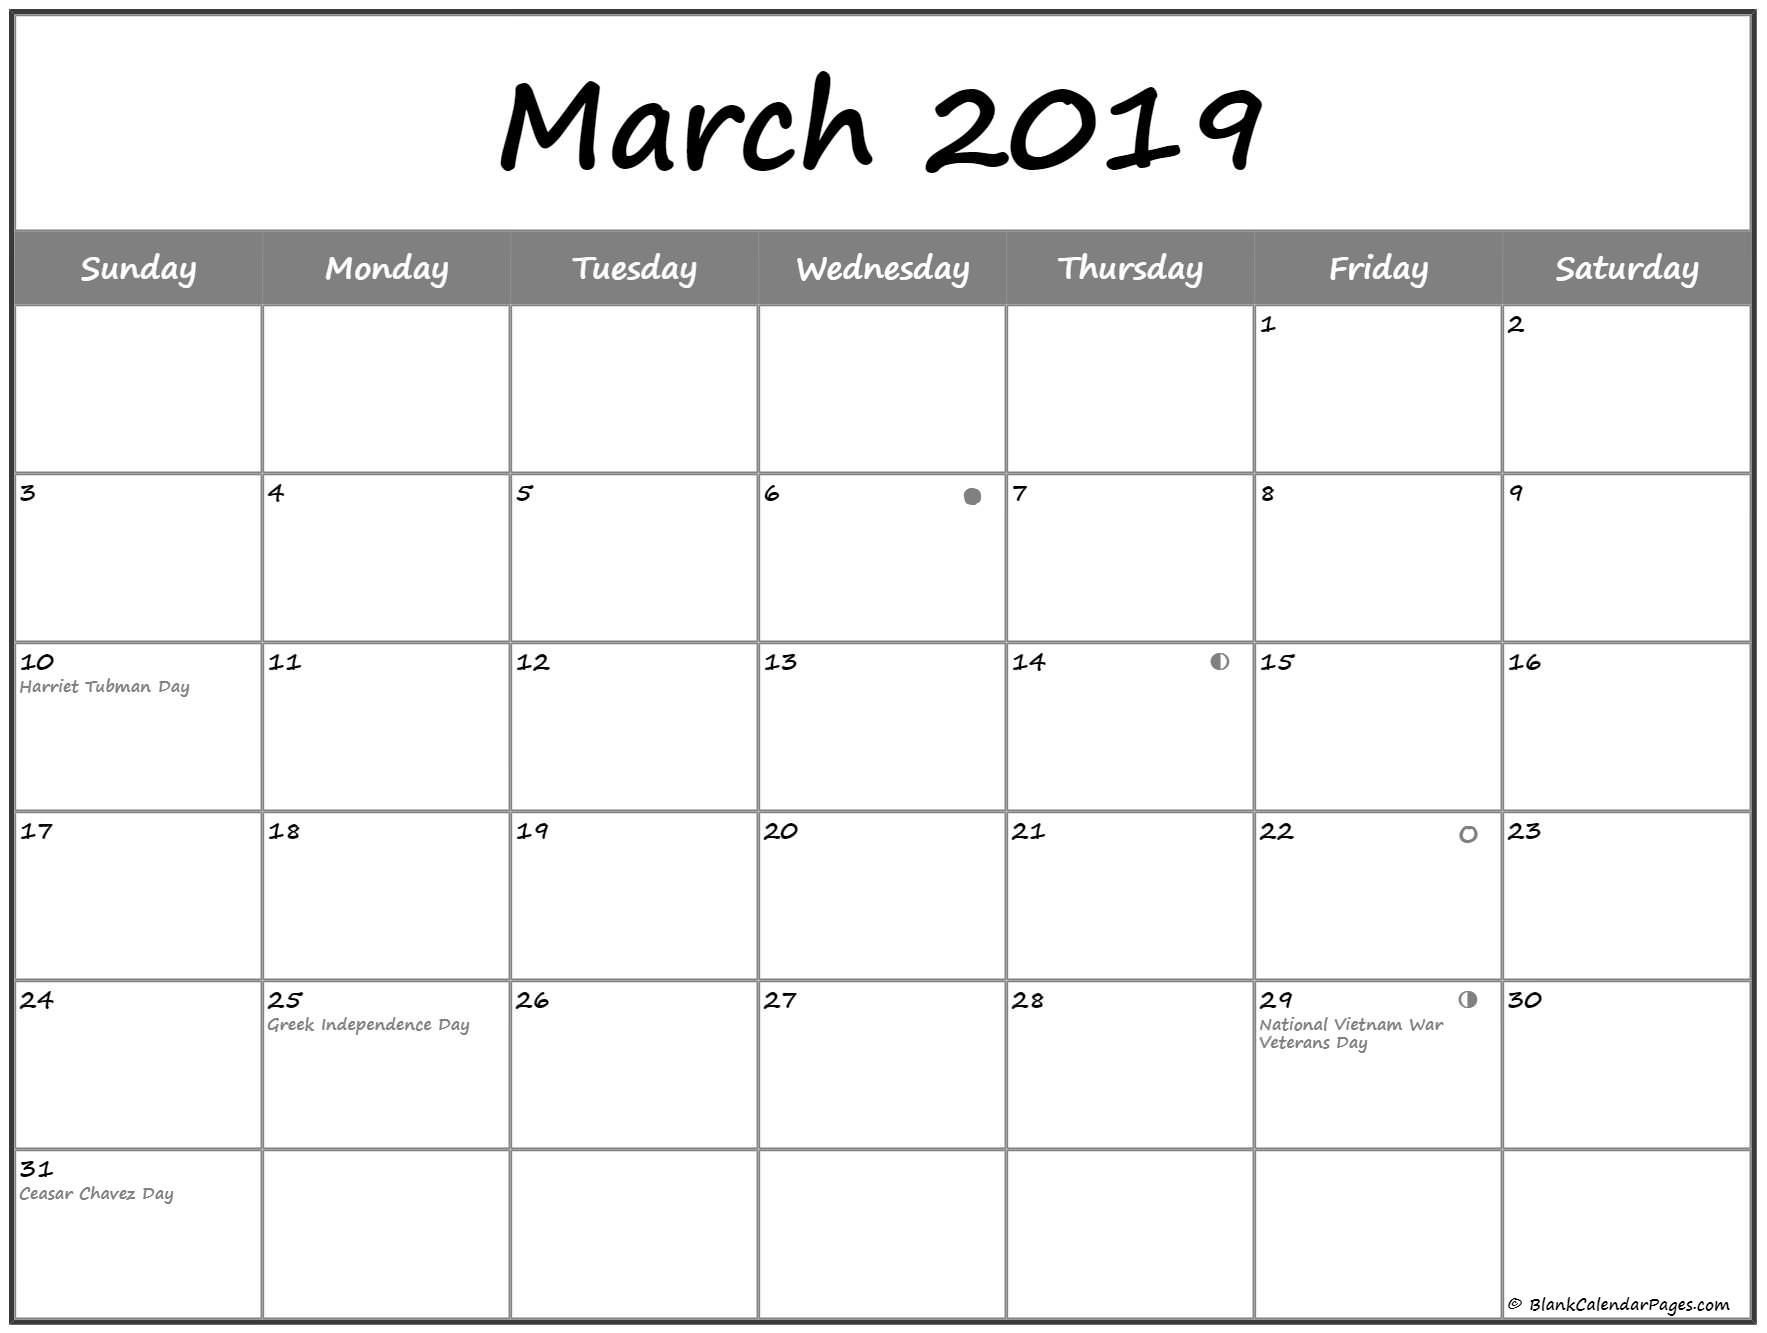 March 2019 Lunar Calendar Moon Phases | Free Monthly Calendar Calendar 2019 With Moon Phases